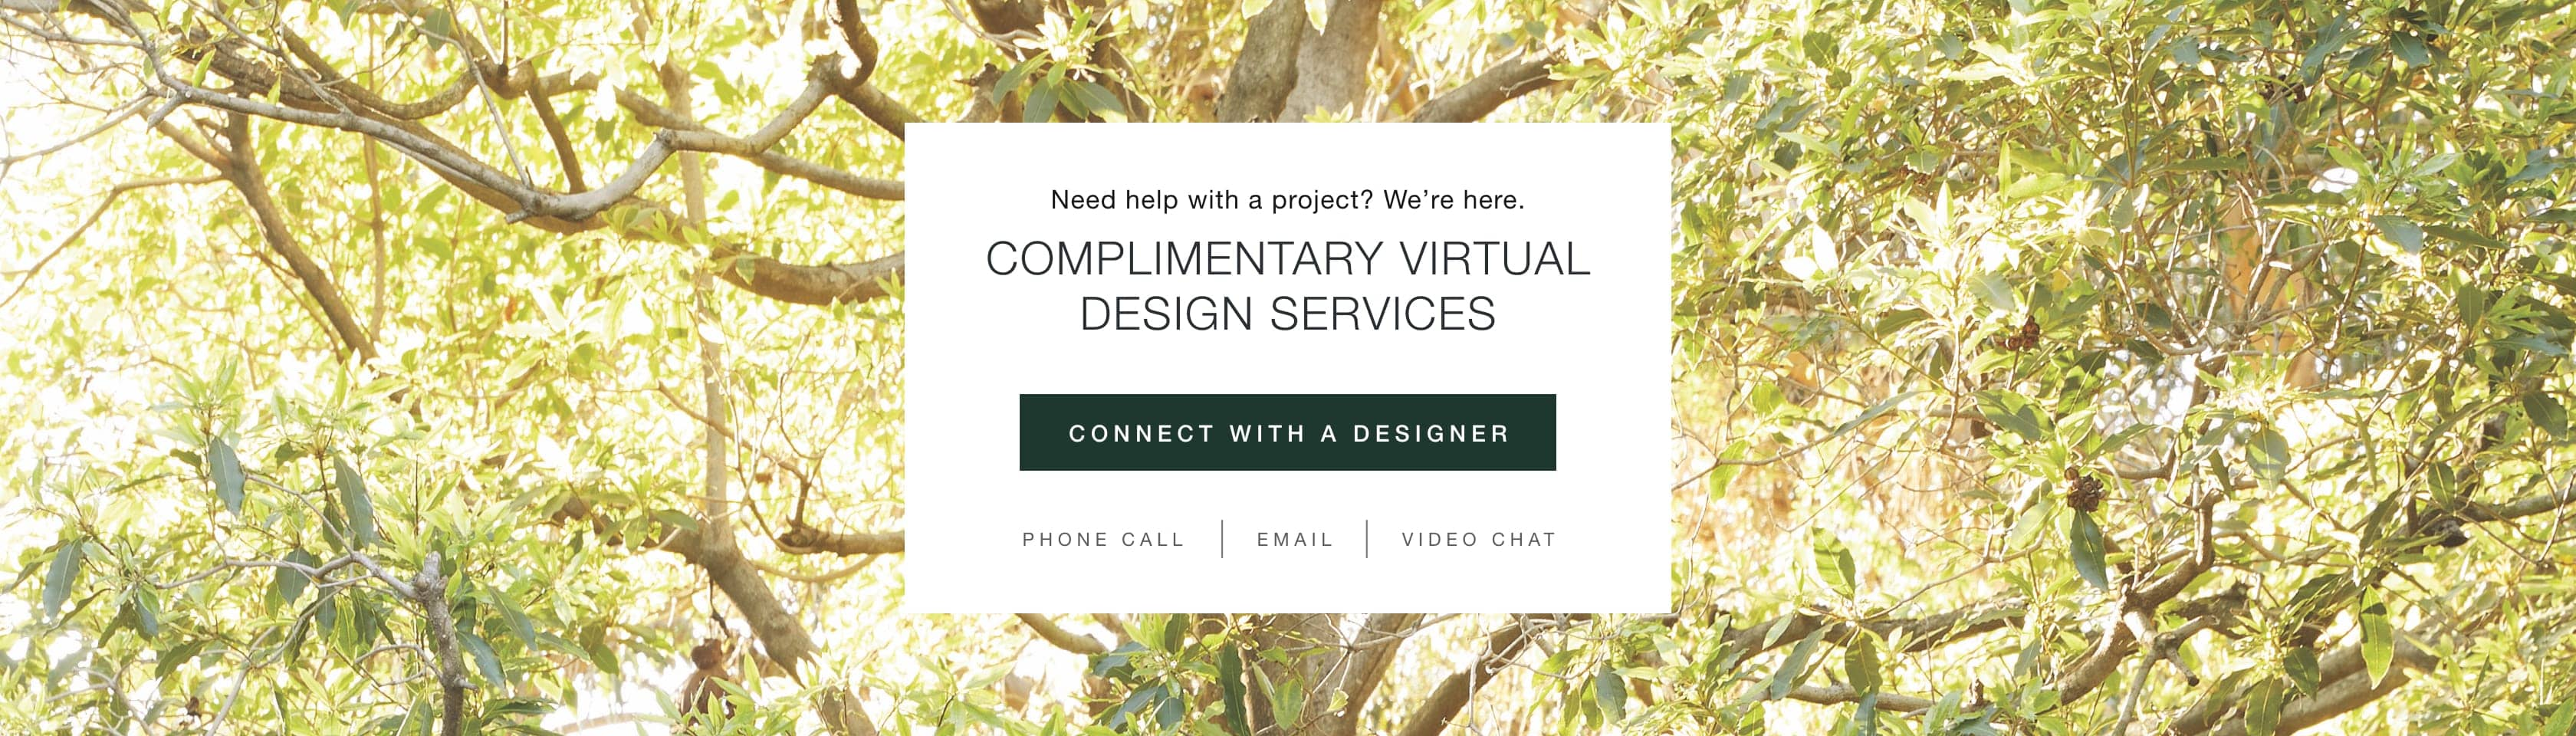 Connect with an Arhaus Designer